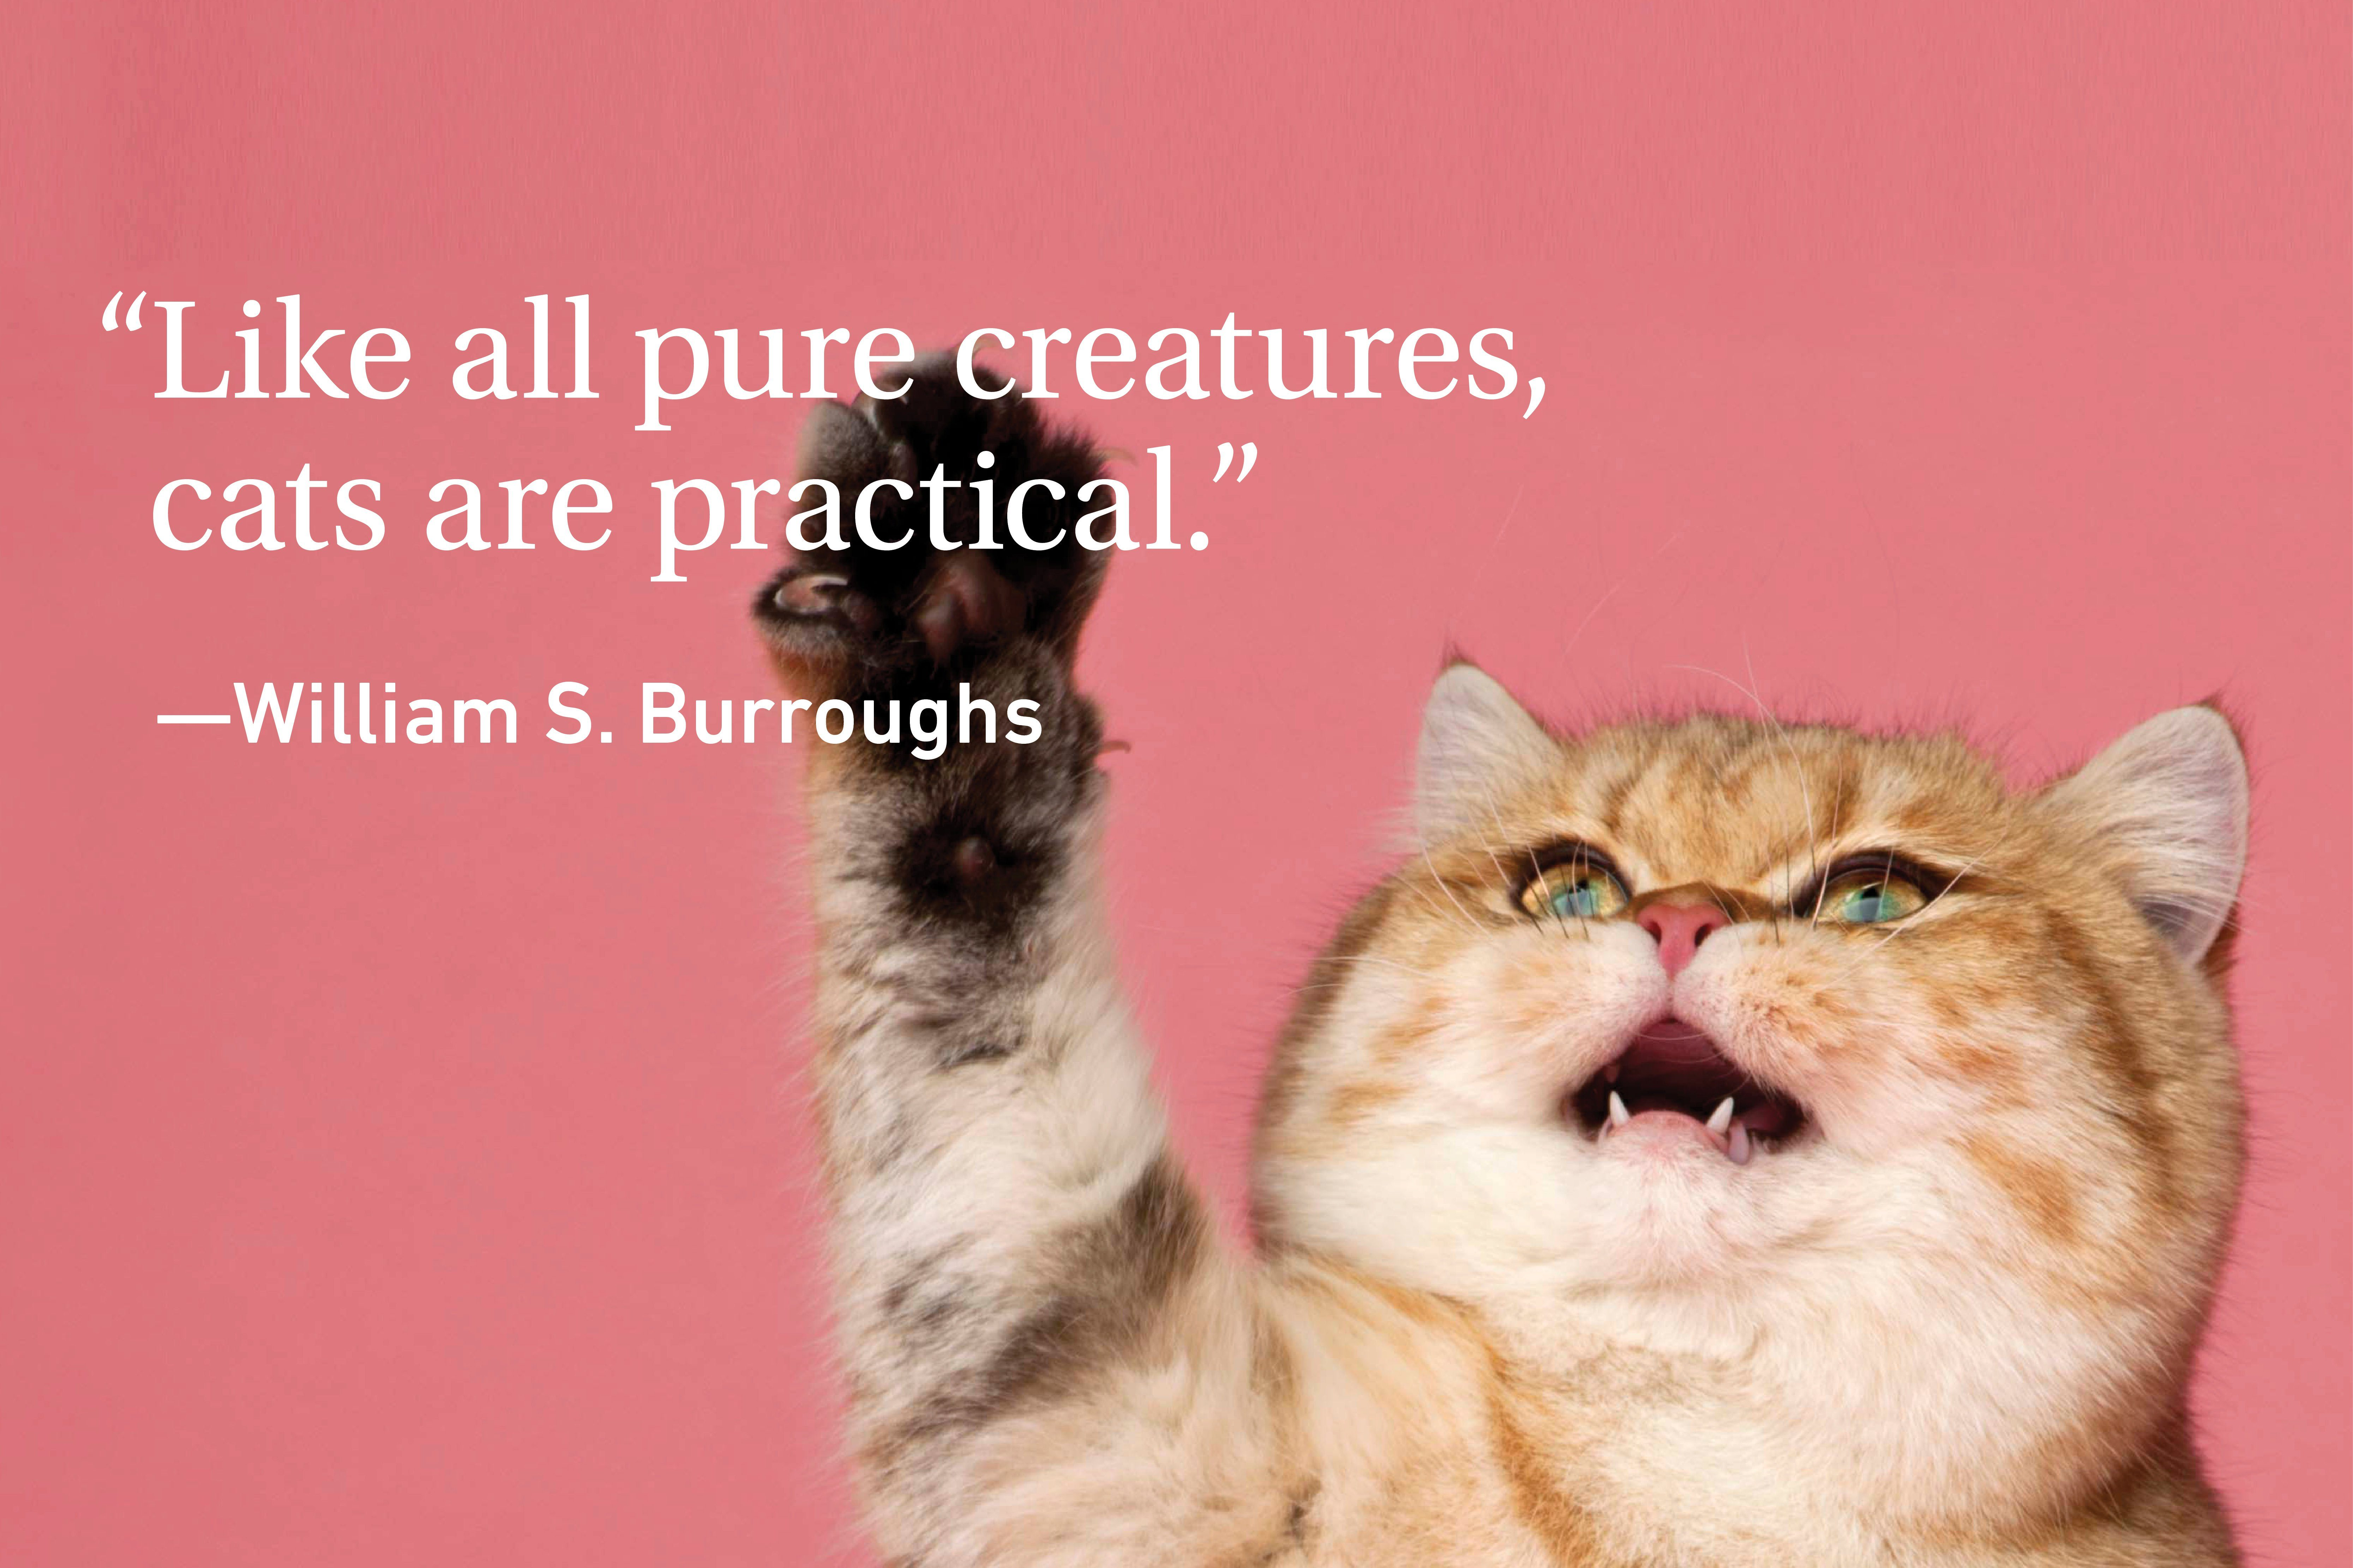 Cat Quote on a pink background with a growling cat